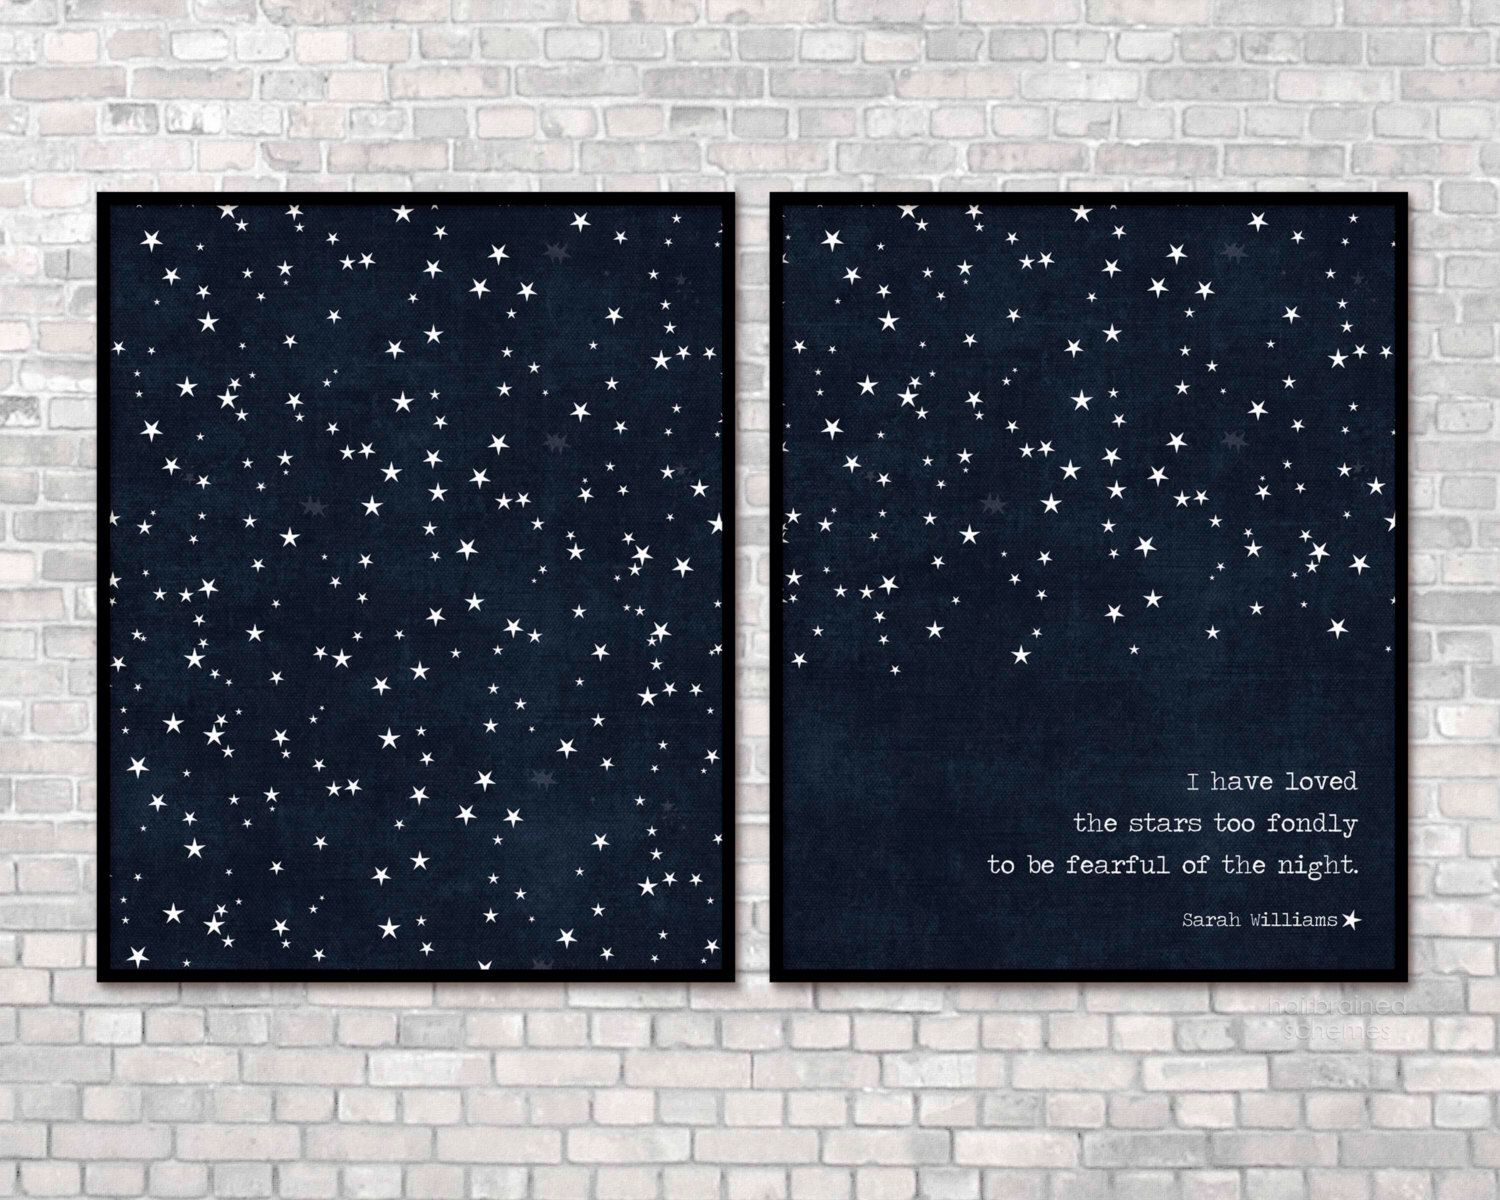 Digital Prints I Have Loved the Stars Too Fondly To Be Fearful of the Night Print/All Stars Dark Navy Blue Stars Modern Universe Poster by hairbrainedschemes on Etsy https://www.etsy.com/listing/105650397/digital-prints-i-have-loved-the-stars